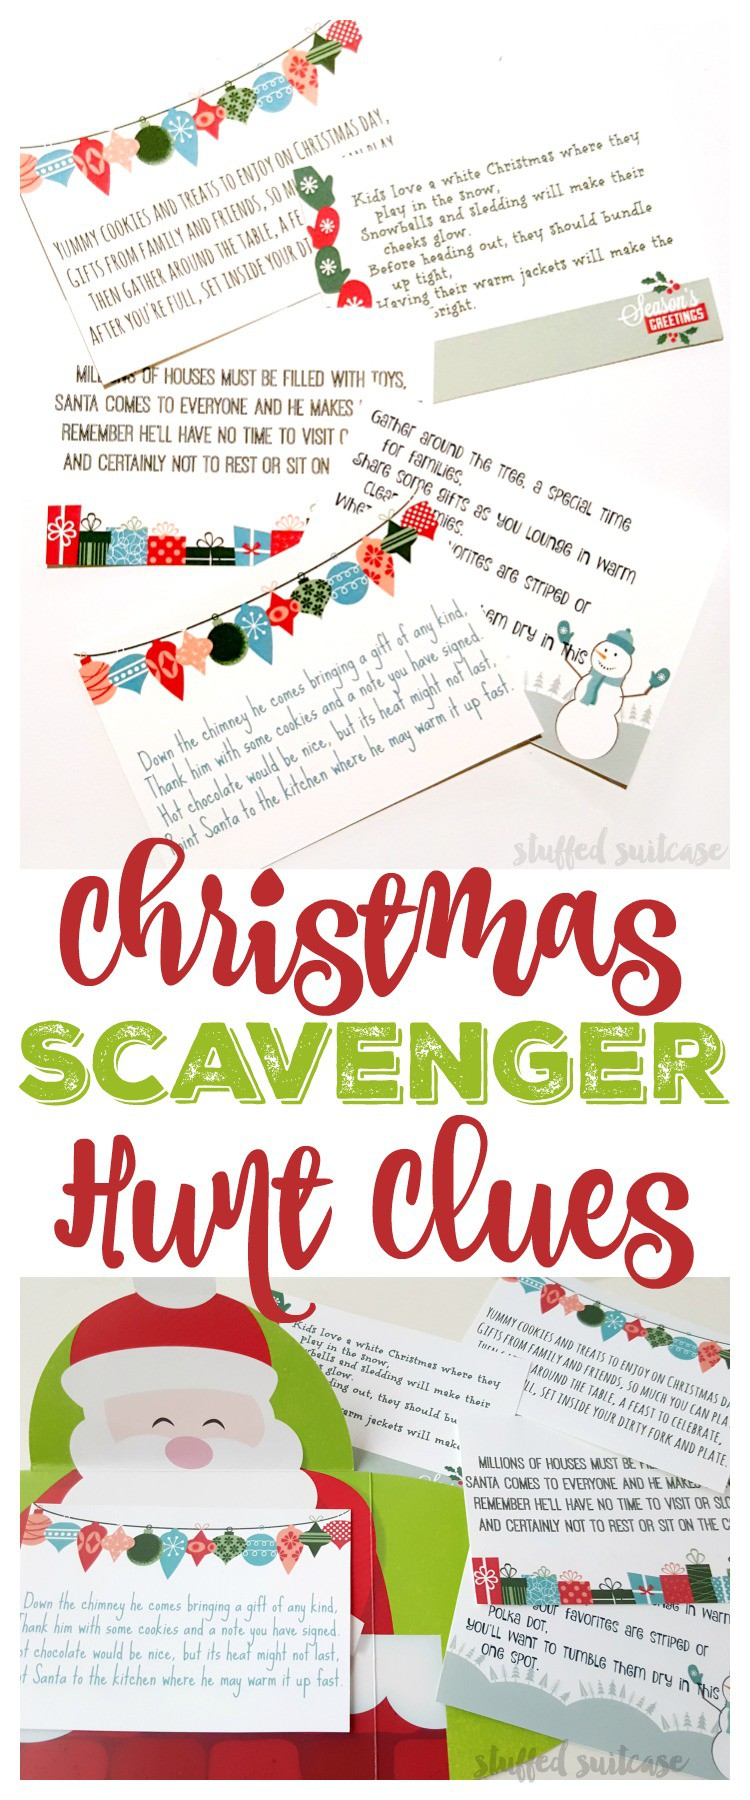 photograph about Christmas Scavenger Hunt Printable Clues referred to as Xmas Scavenger Hunt Riddles and Clues